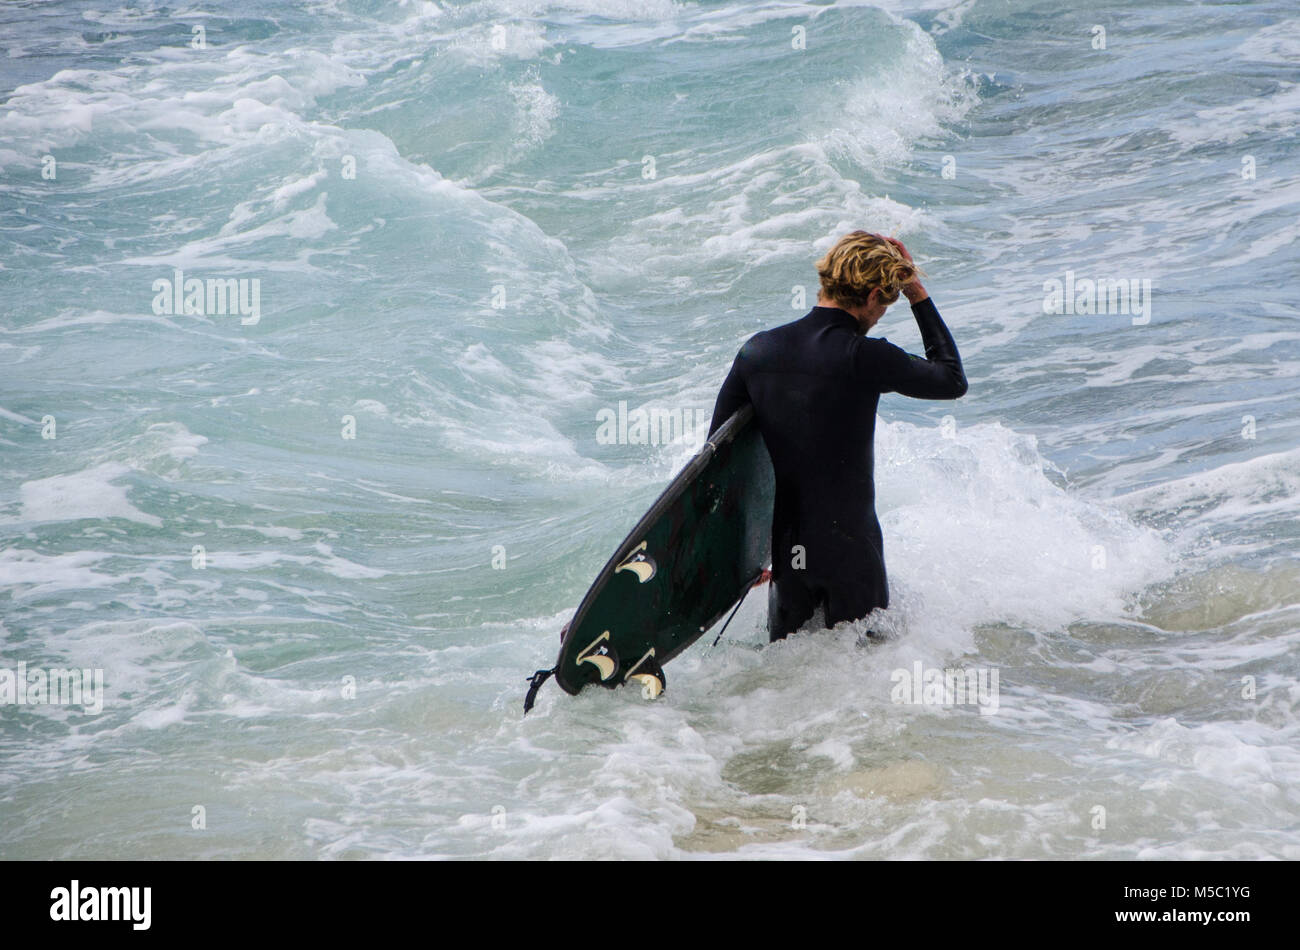 Male surfer walking through waves with surfboard. Freedom and expectation as male walks out to surf next wave. - Stock Image